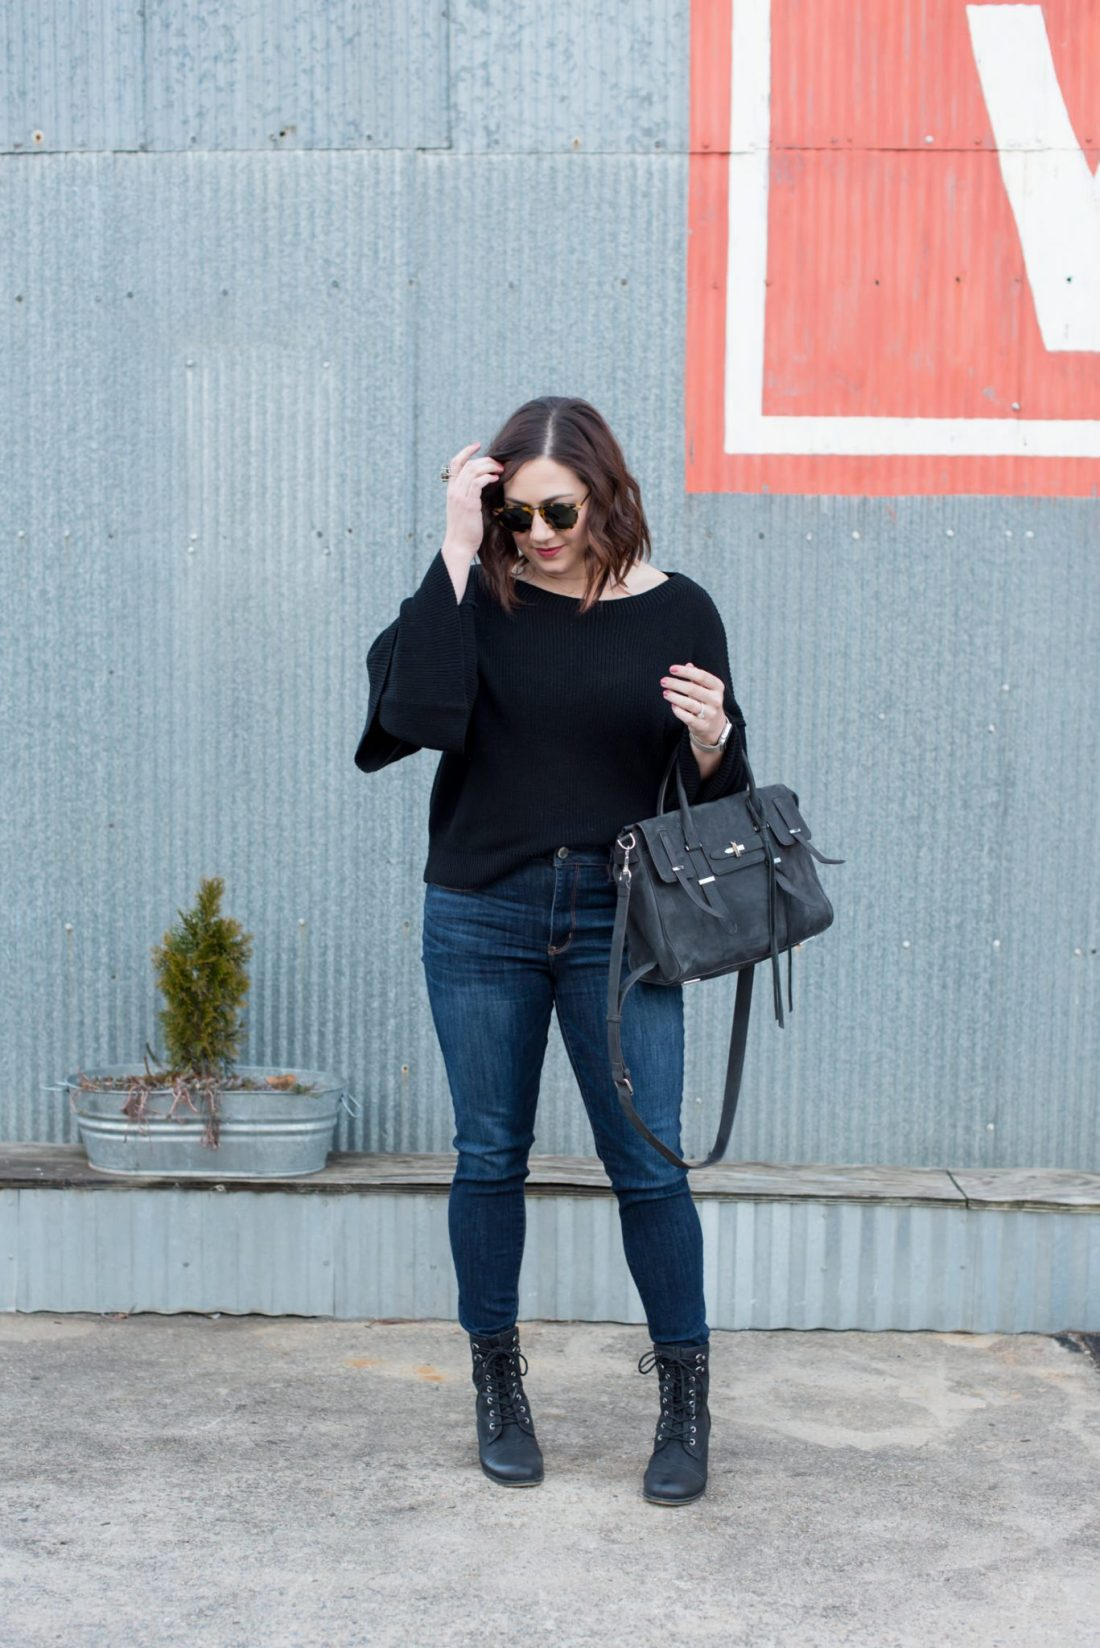 Lightweight Sweaters You Can Transition to Spring // Miss Molly Moon